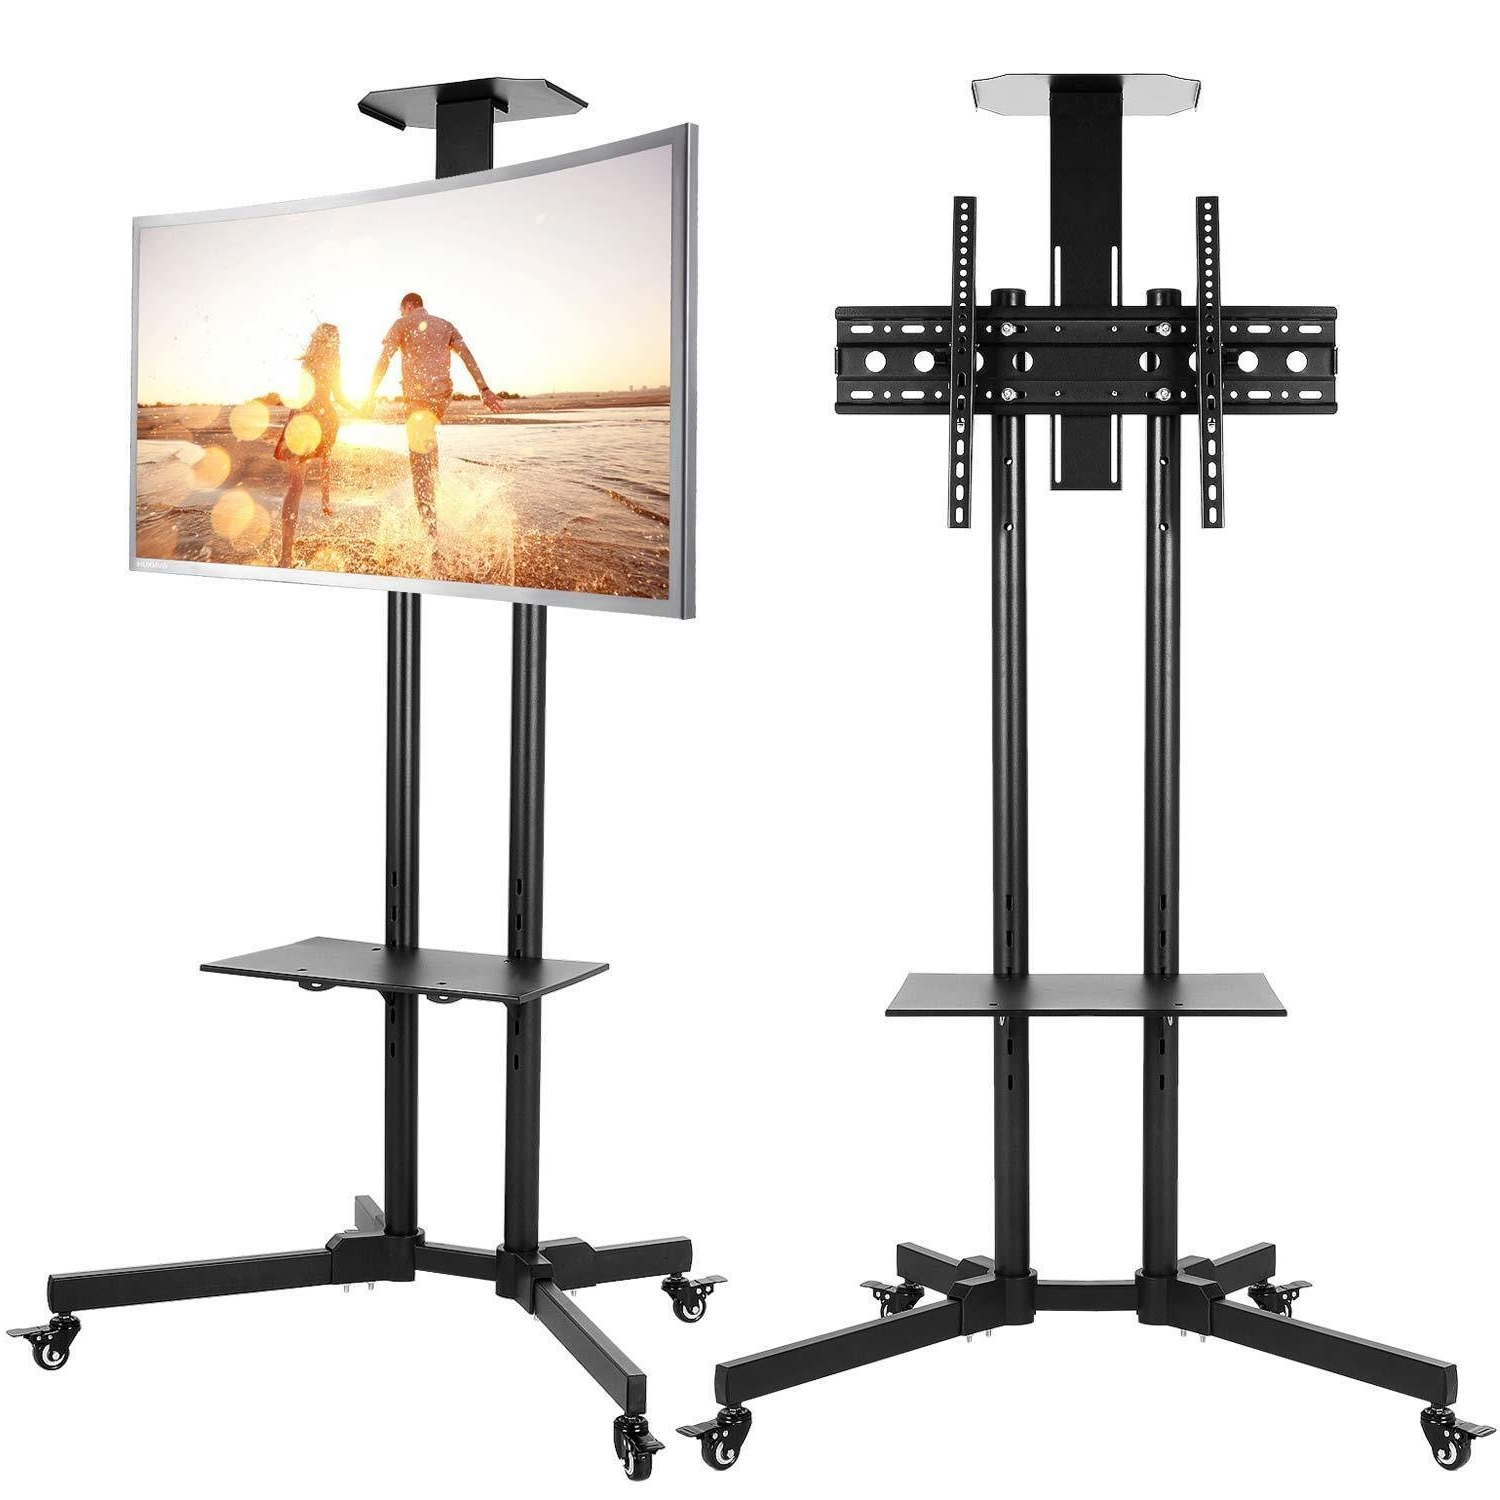 Buy Portable Tv Stand With Wheels For Lcd, Plasma Or Led In Rolling Tv Stands With Wheels With Adjustable Metal Shelf (View 4 of 20)